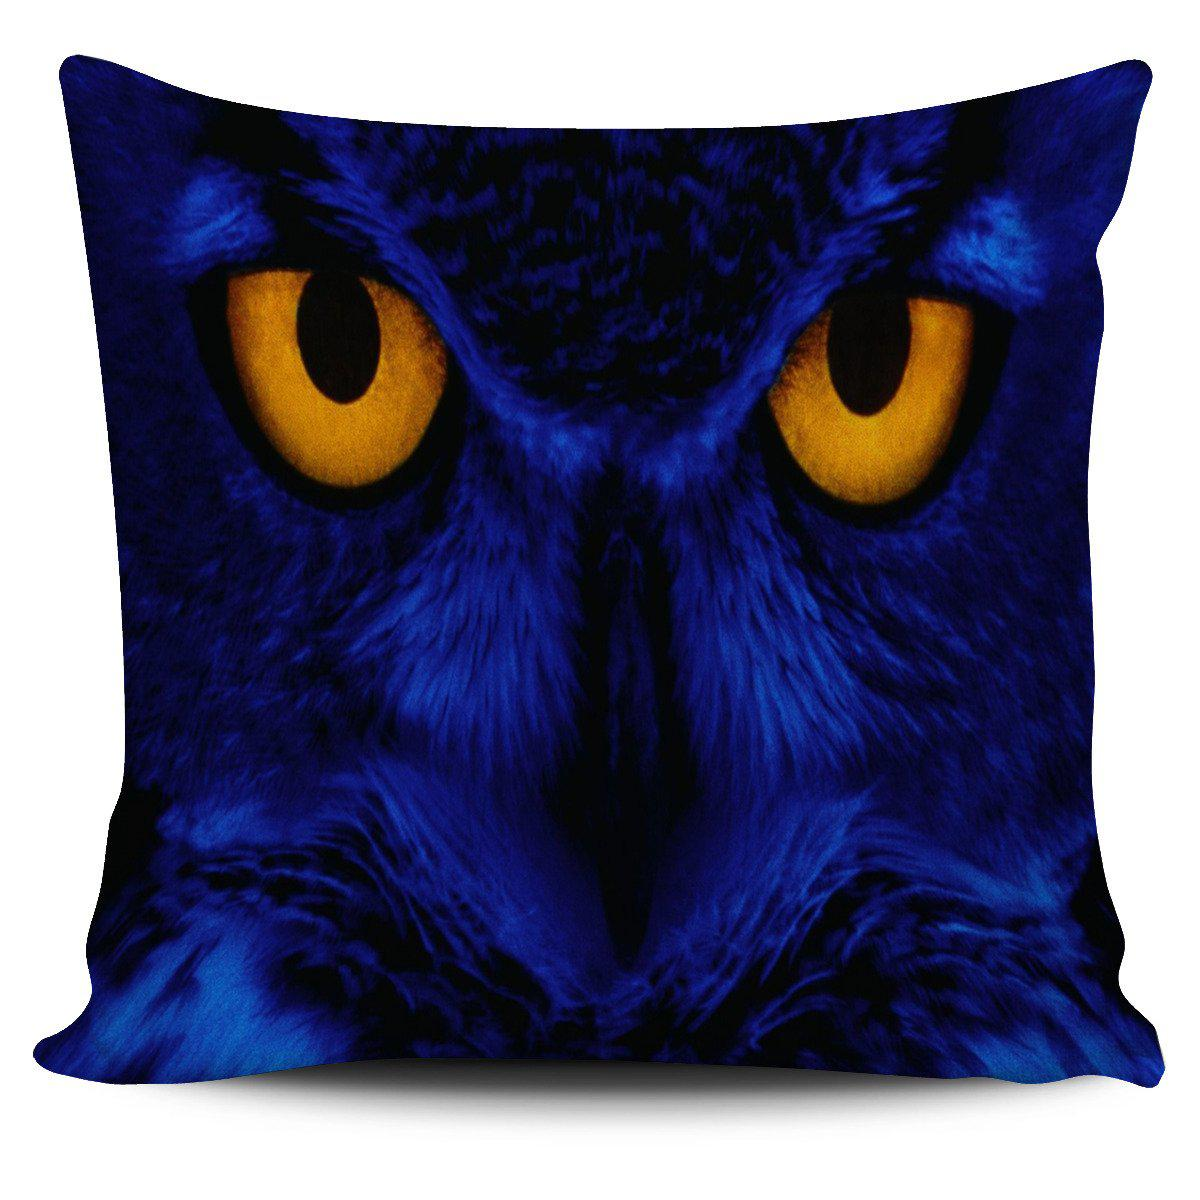 Shopeholic:Owl Pillow cover